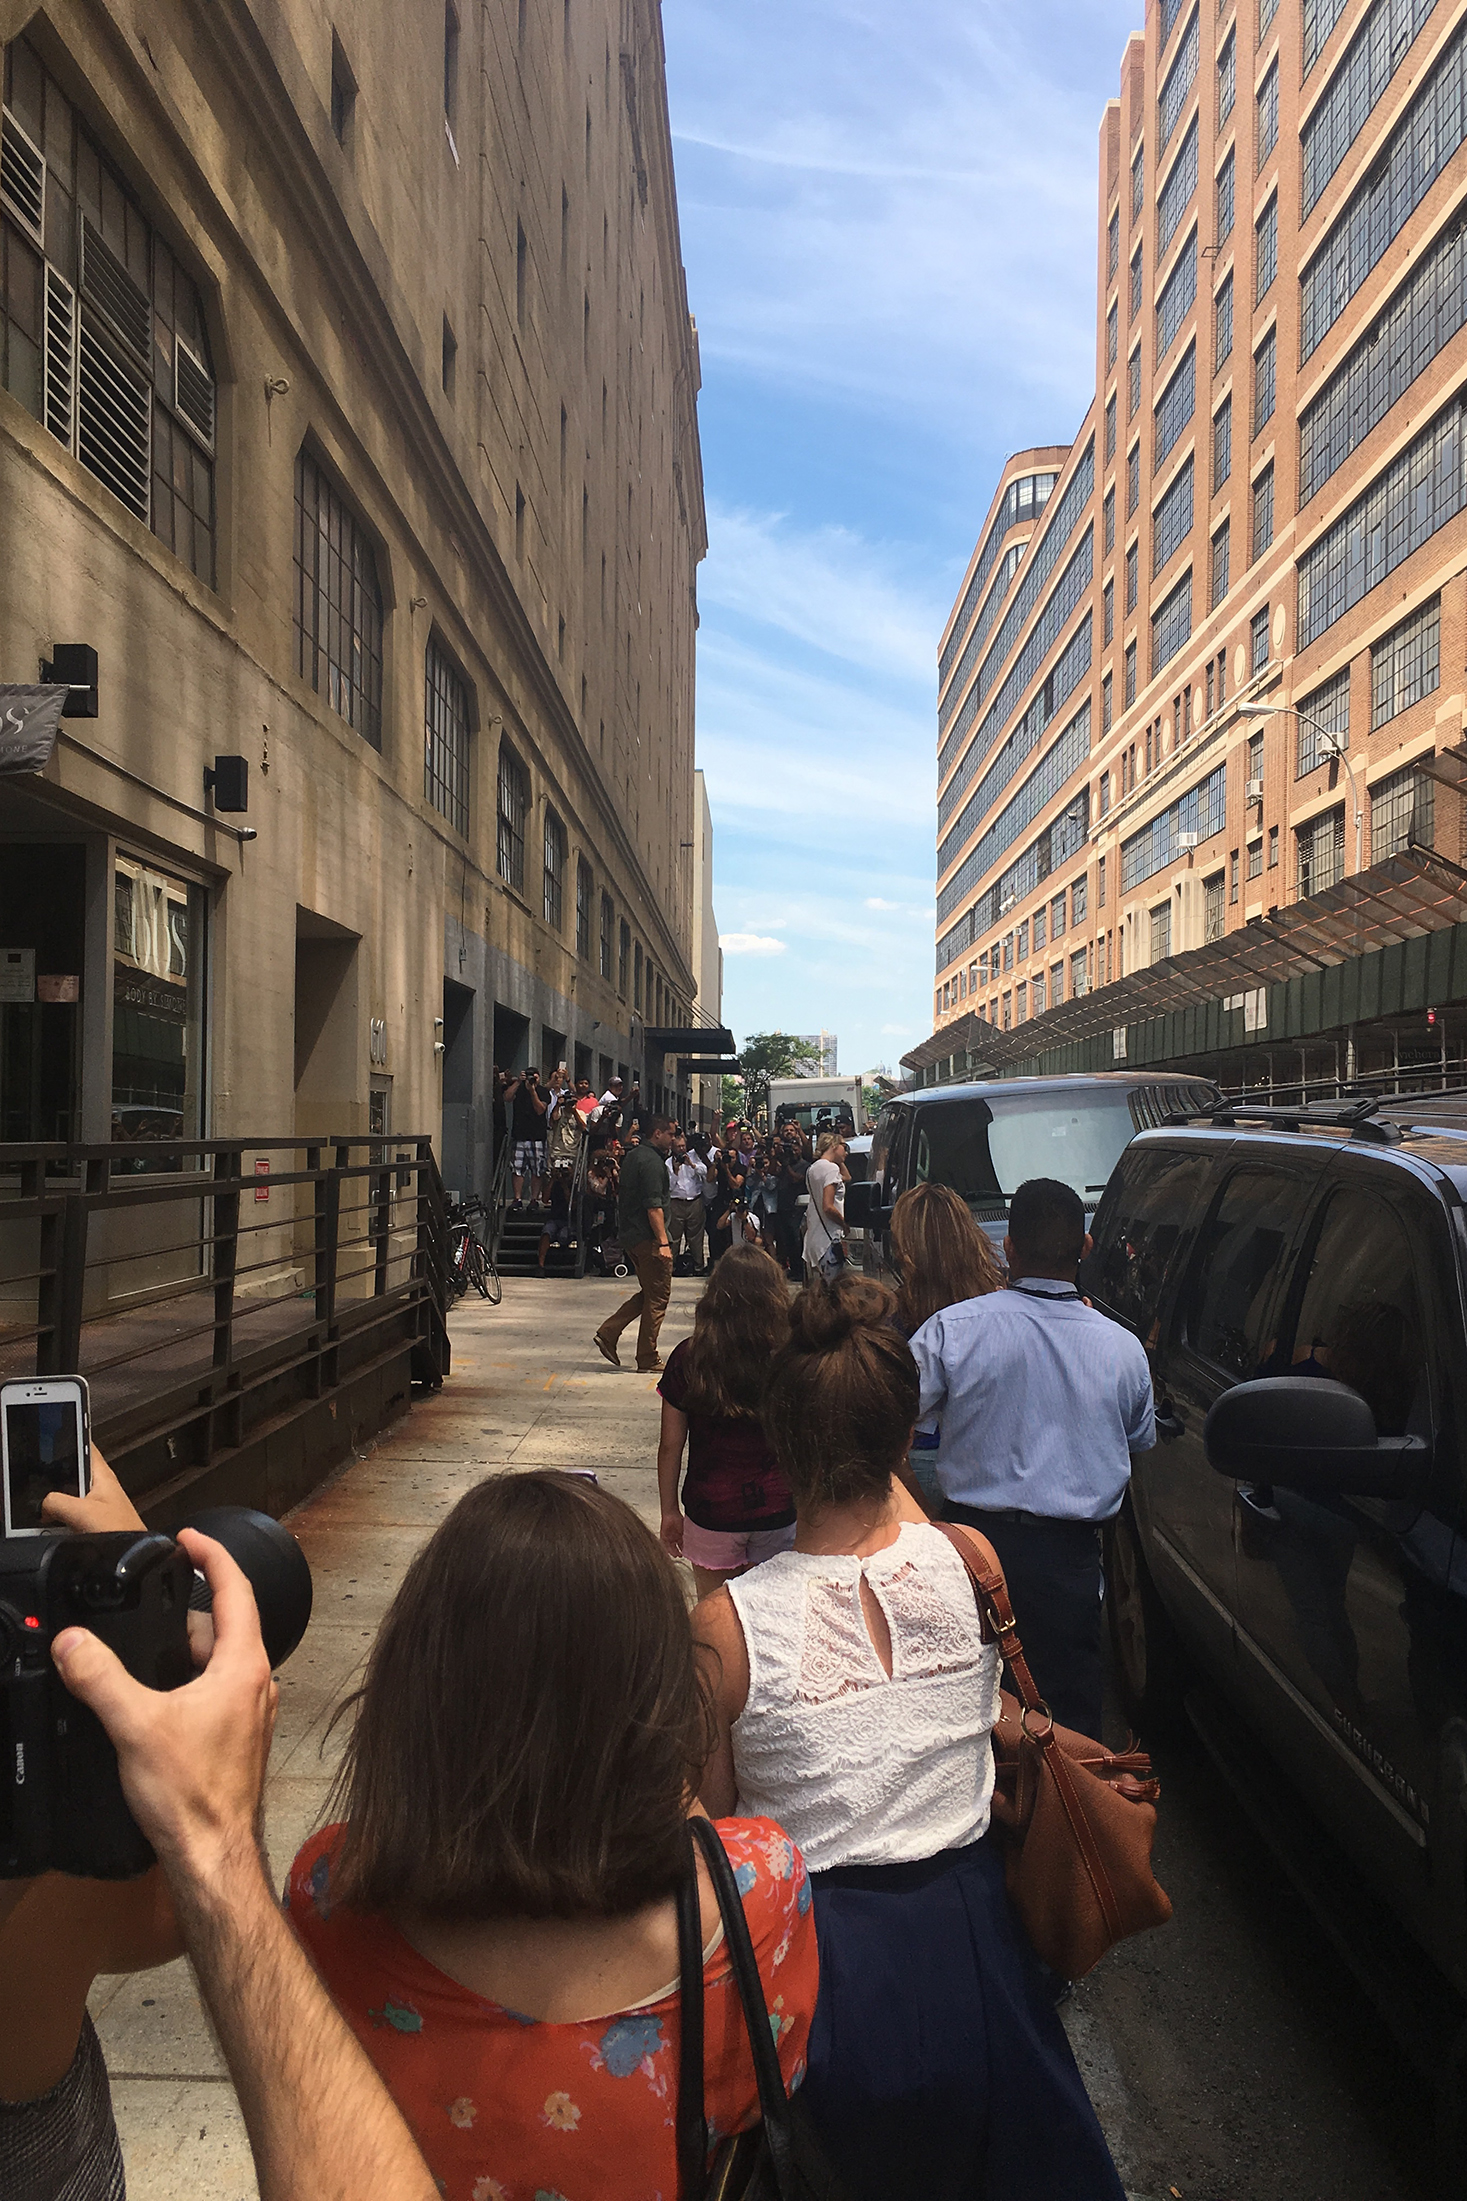 Taylor Swift, in August, exiting the Manhattan location of Body by Simone, which is across the street from the  Surface  offices. (Photo: Our very own Jonathan Bues)